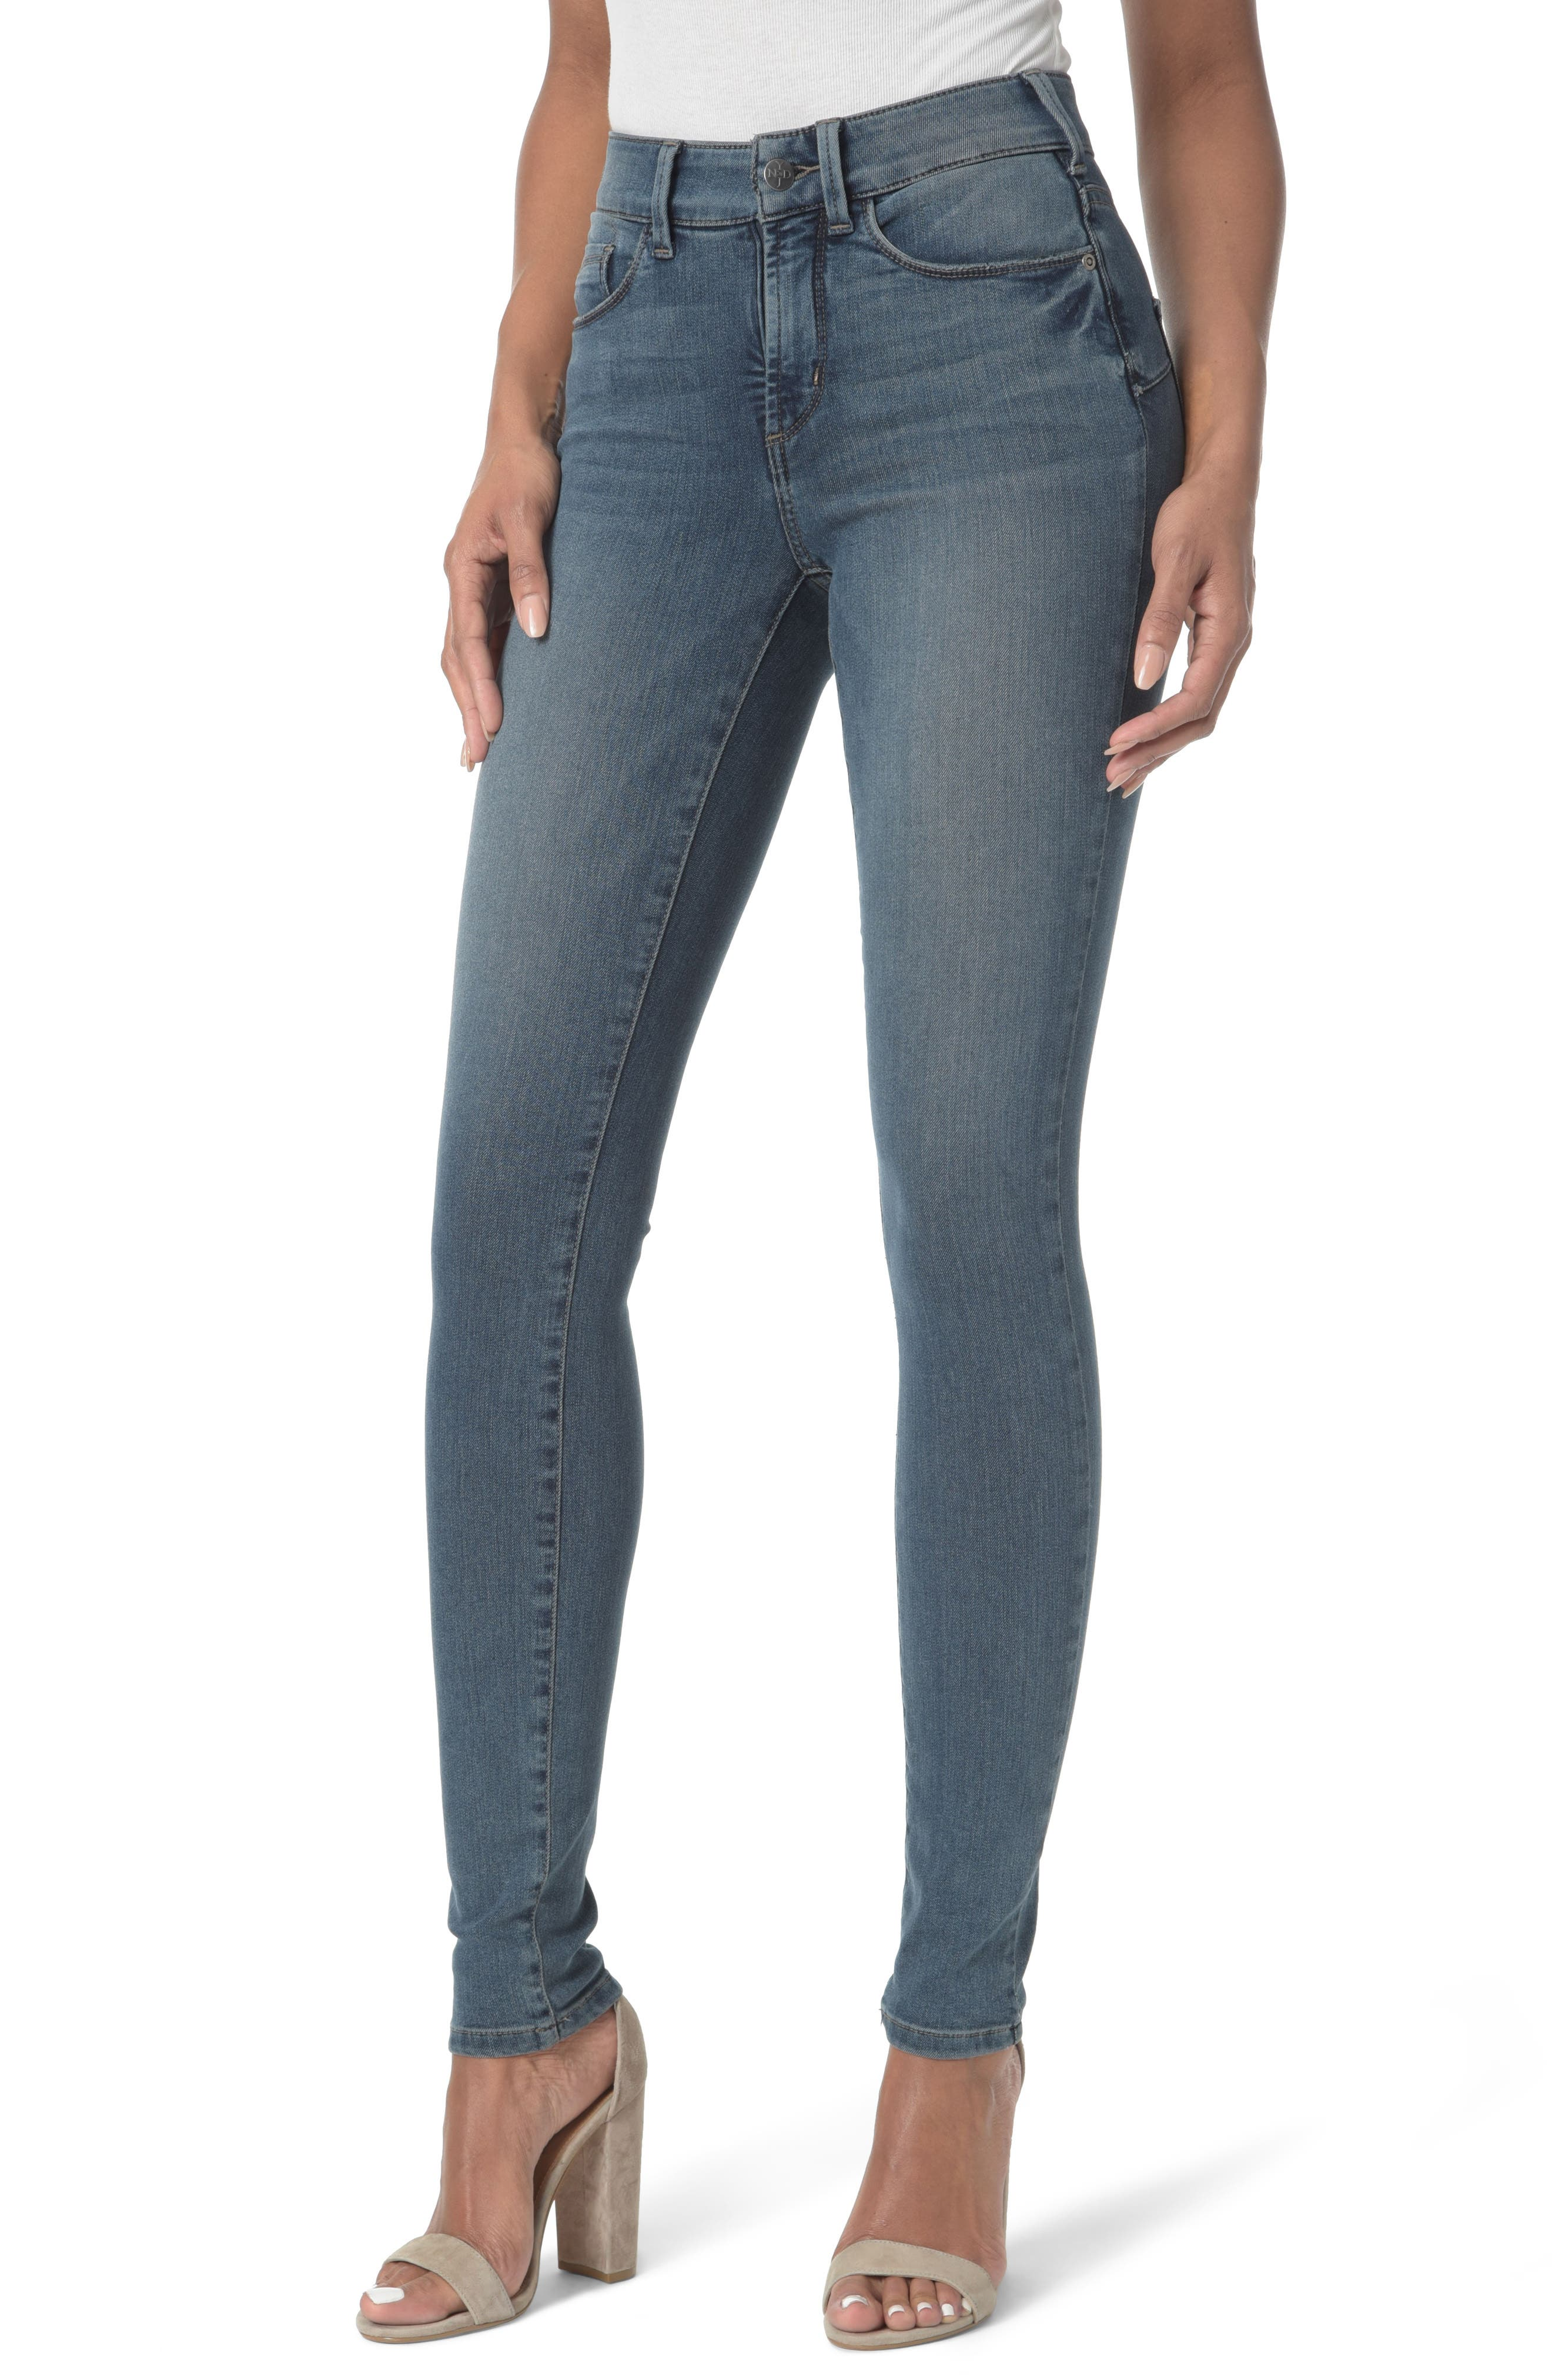 Alina Uplift Stretch Skinny Jeans,                             Main thumbnail 1, color,                             403